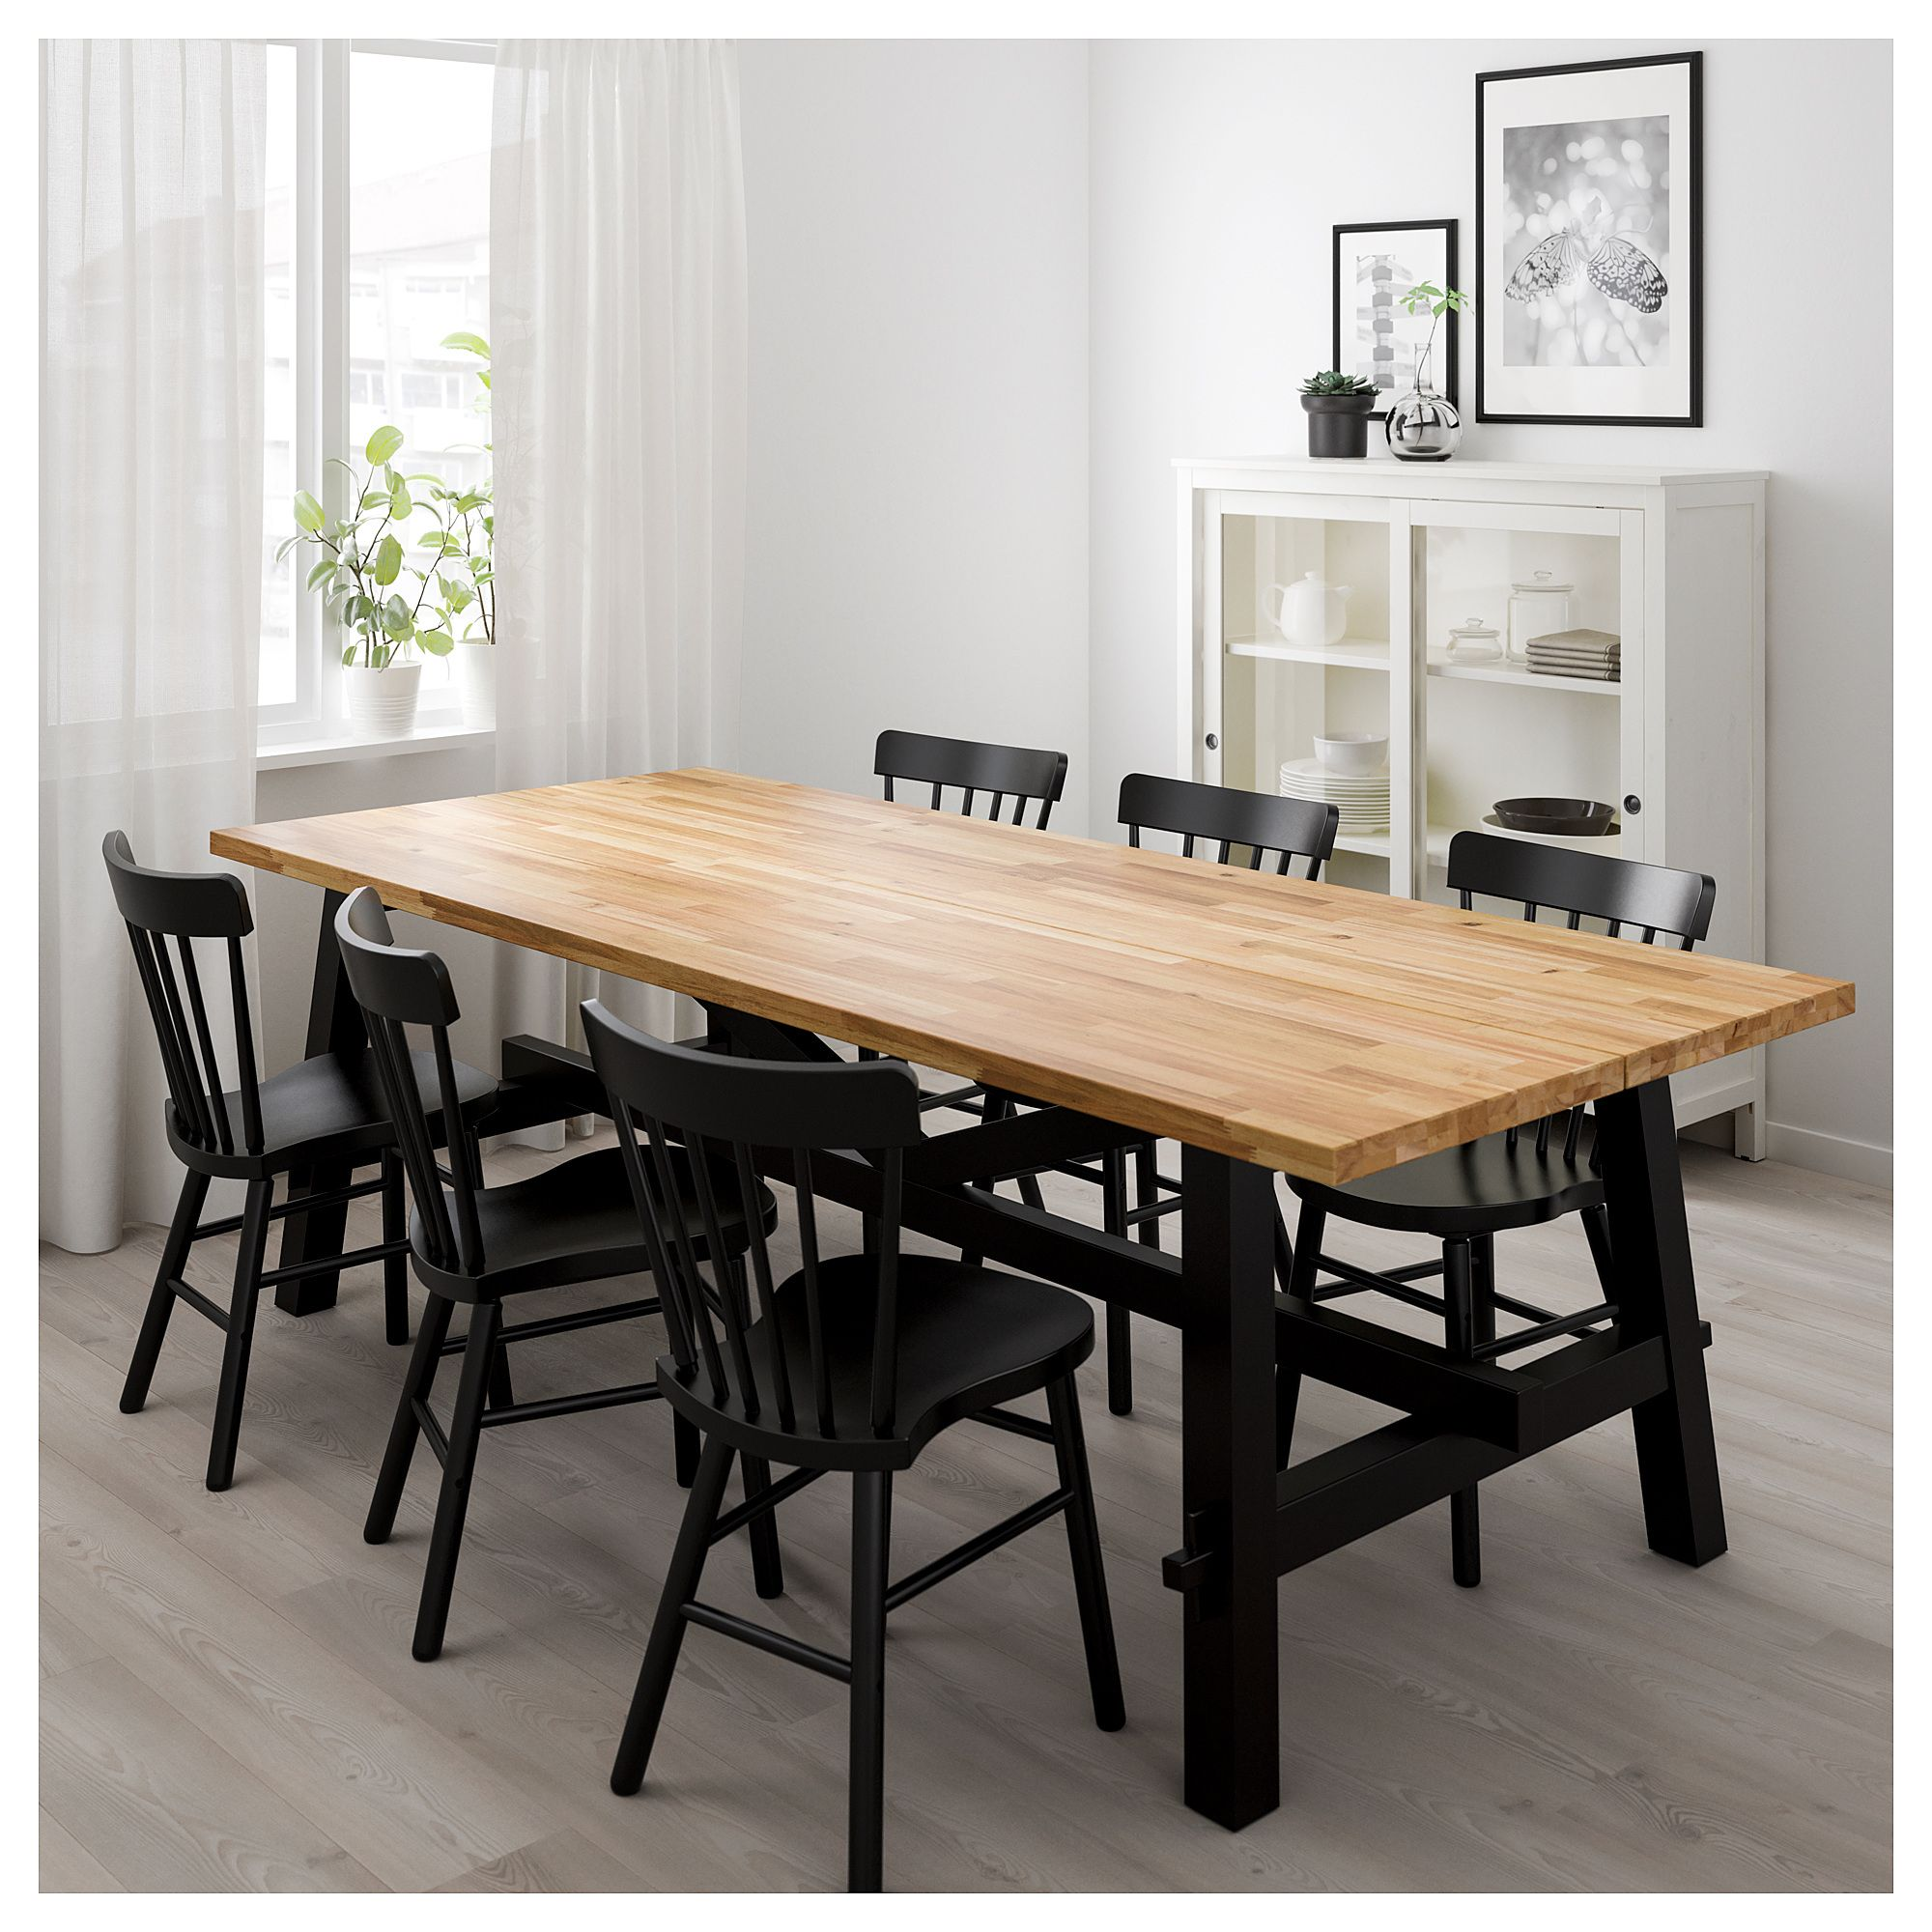 Ikea skogsta dining table acacia